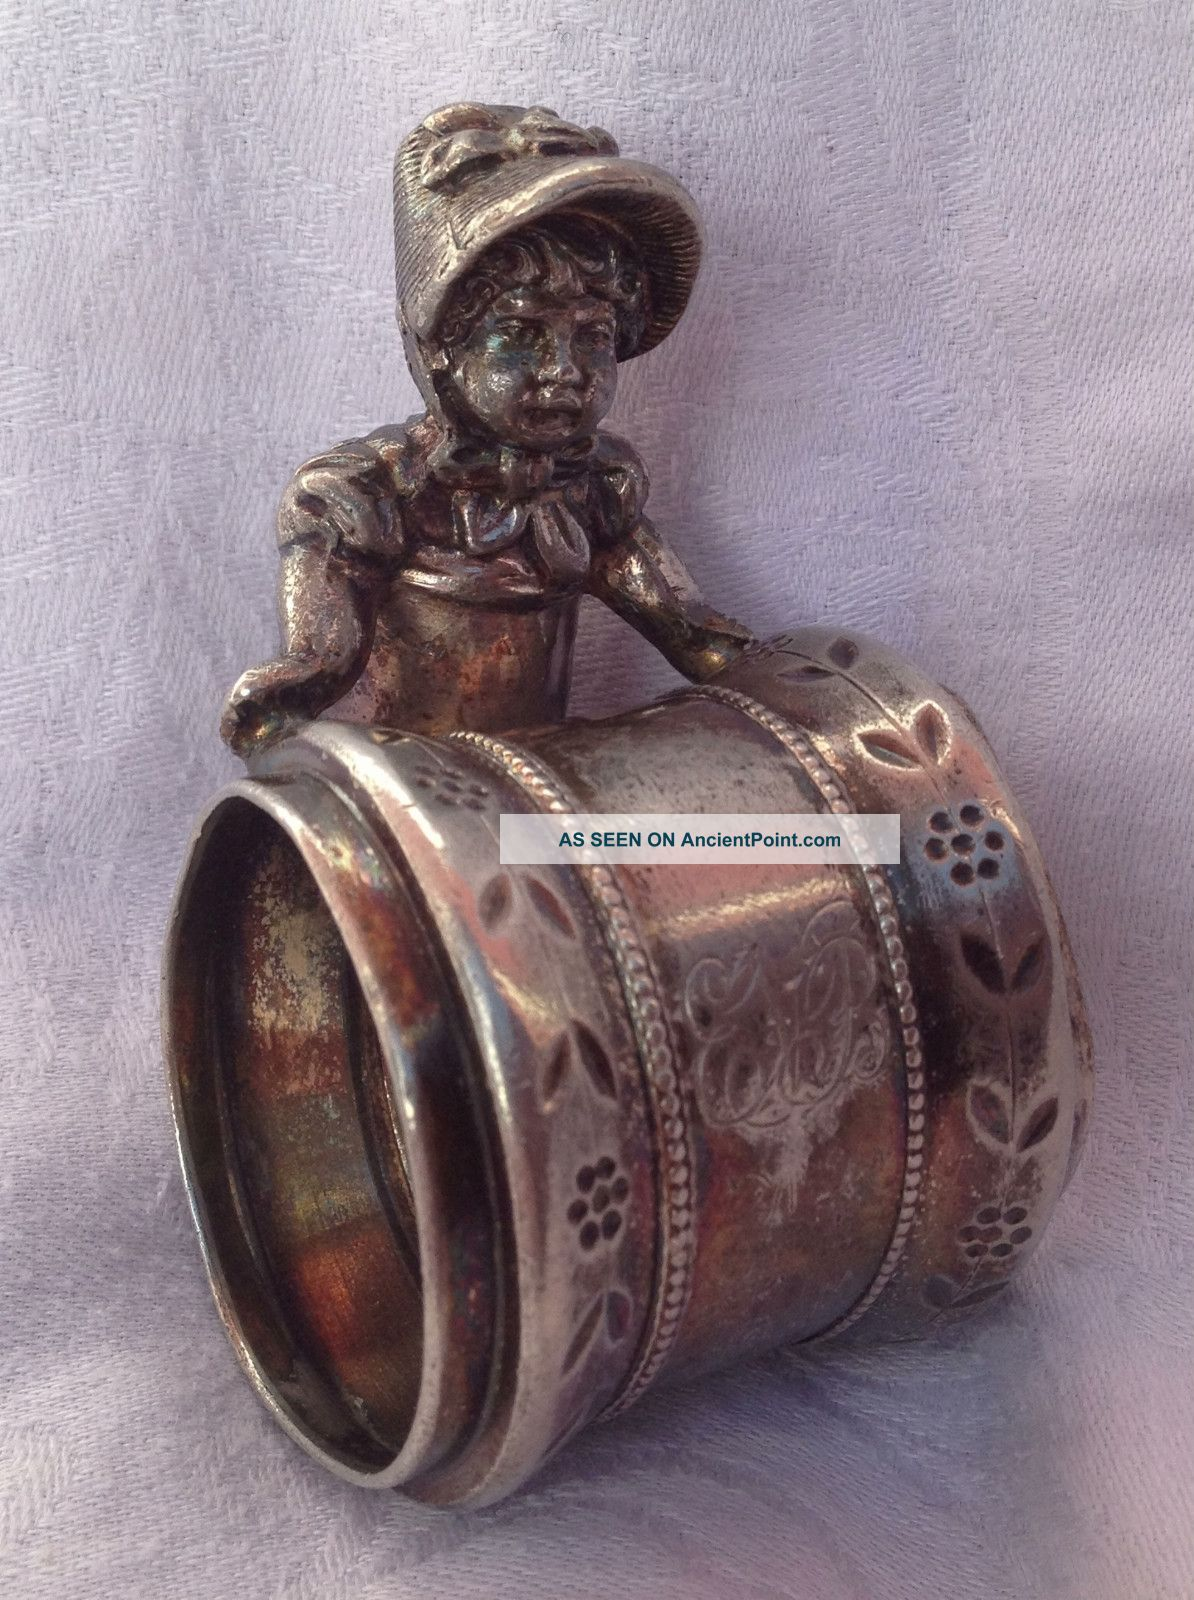 Charming Victorian Antique Kate Greenaway Girl Figural Silverplate Napkin Ring Napkin Rings & Clips photo